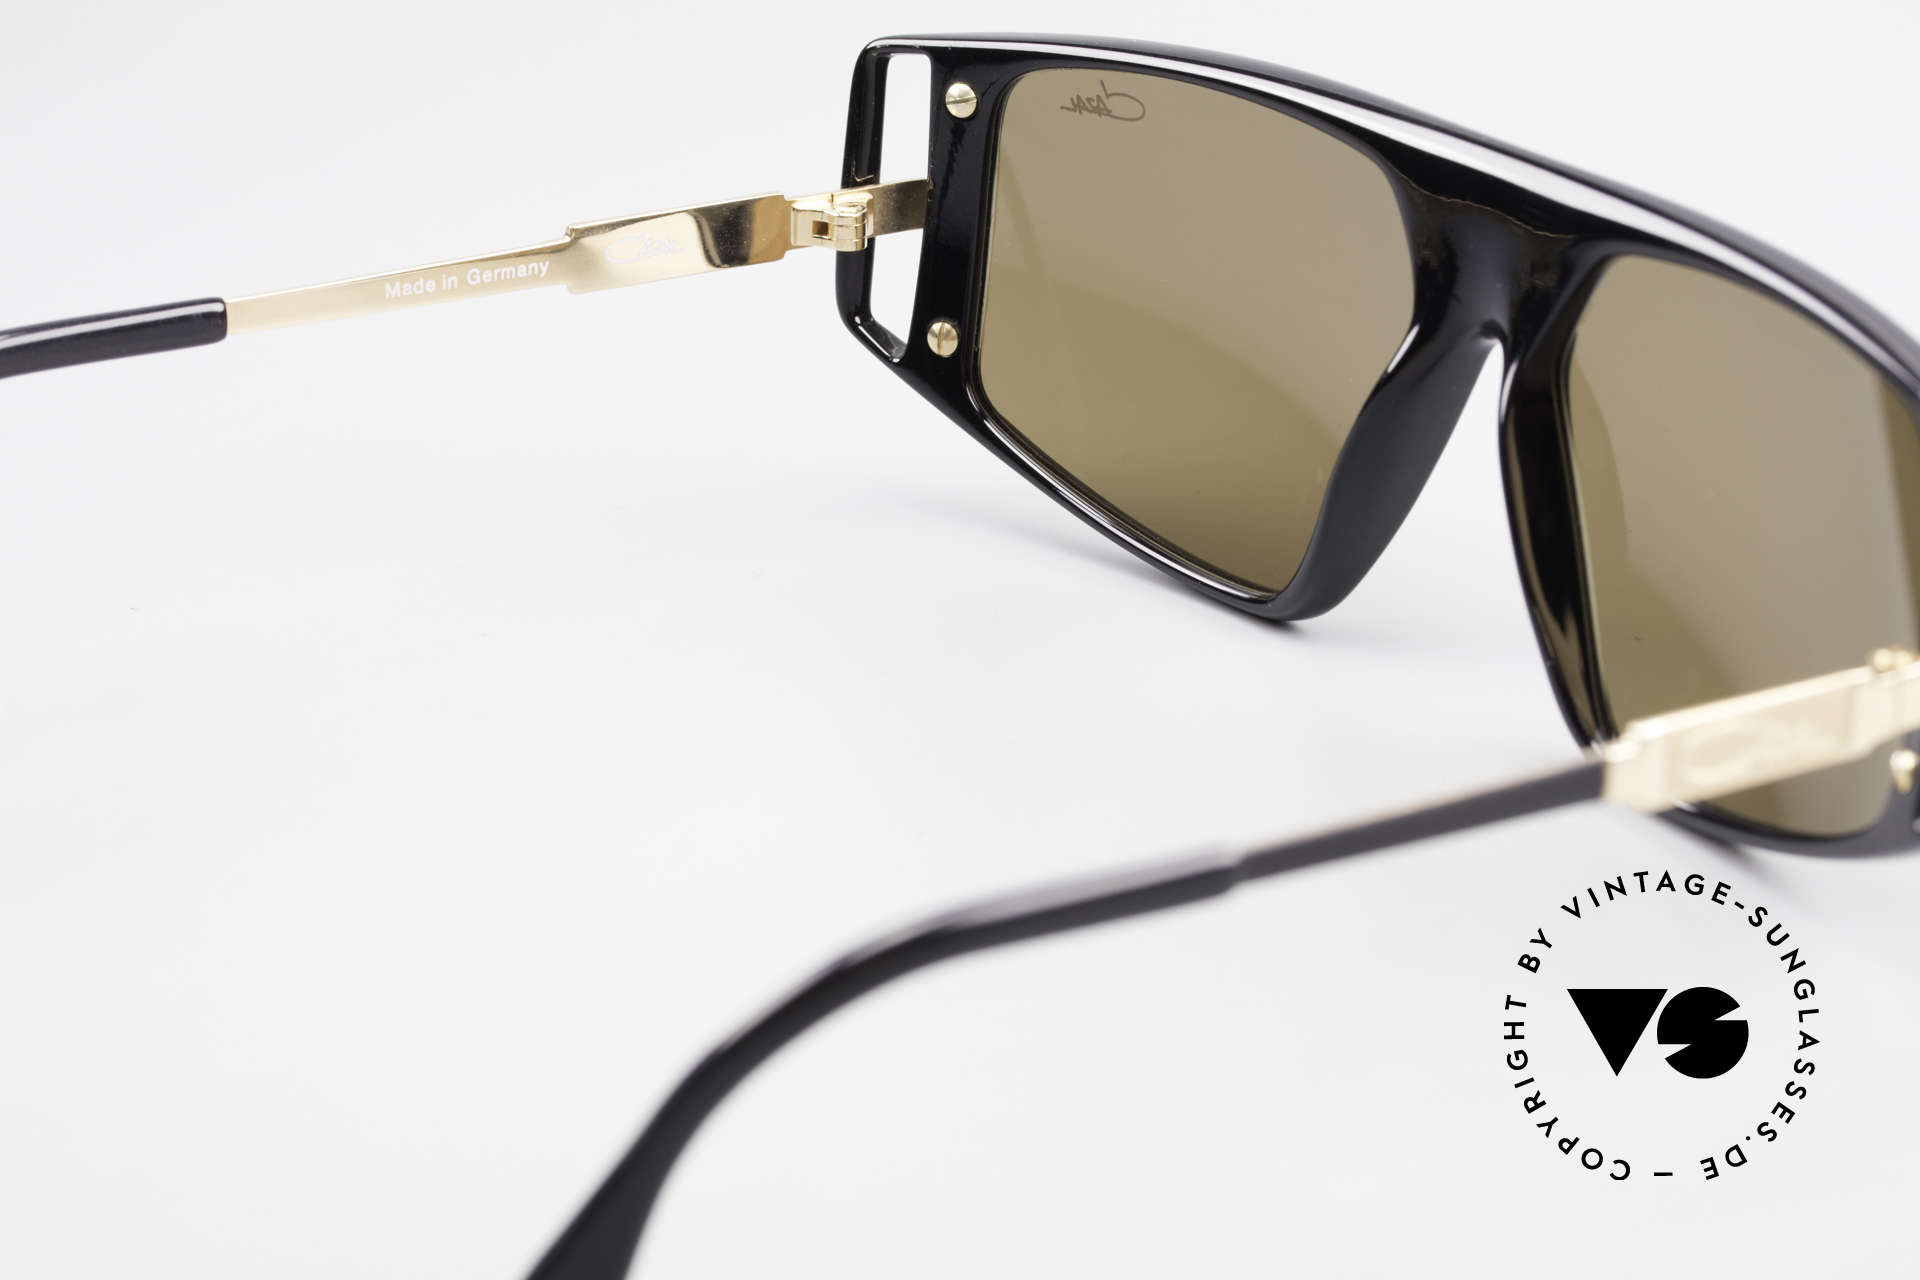 Cazal 874 Legendary 90's Sunglasses, NO RETRO fashion, but a unique 25 years old rarity!, Made for Men and Women